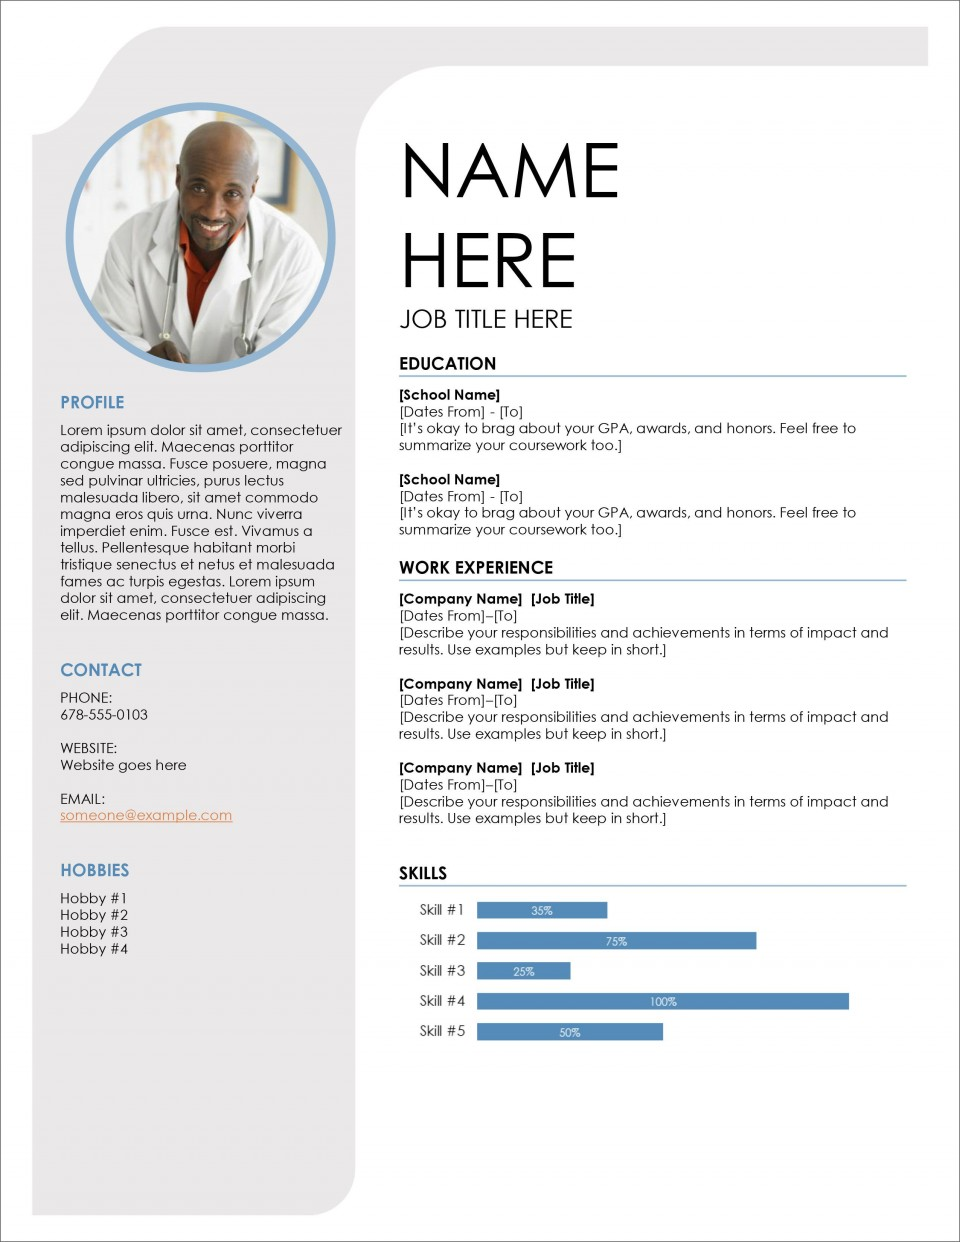 007 Marvelou Resume Template Download Word Image  Cv Free 2019 Example File960